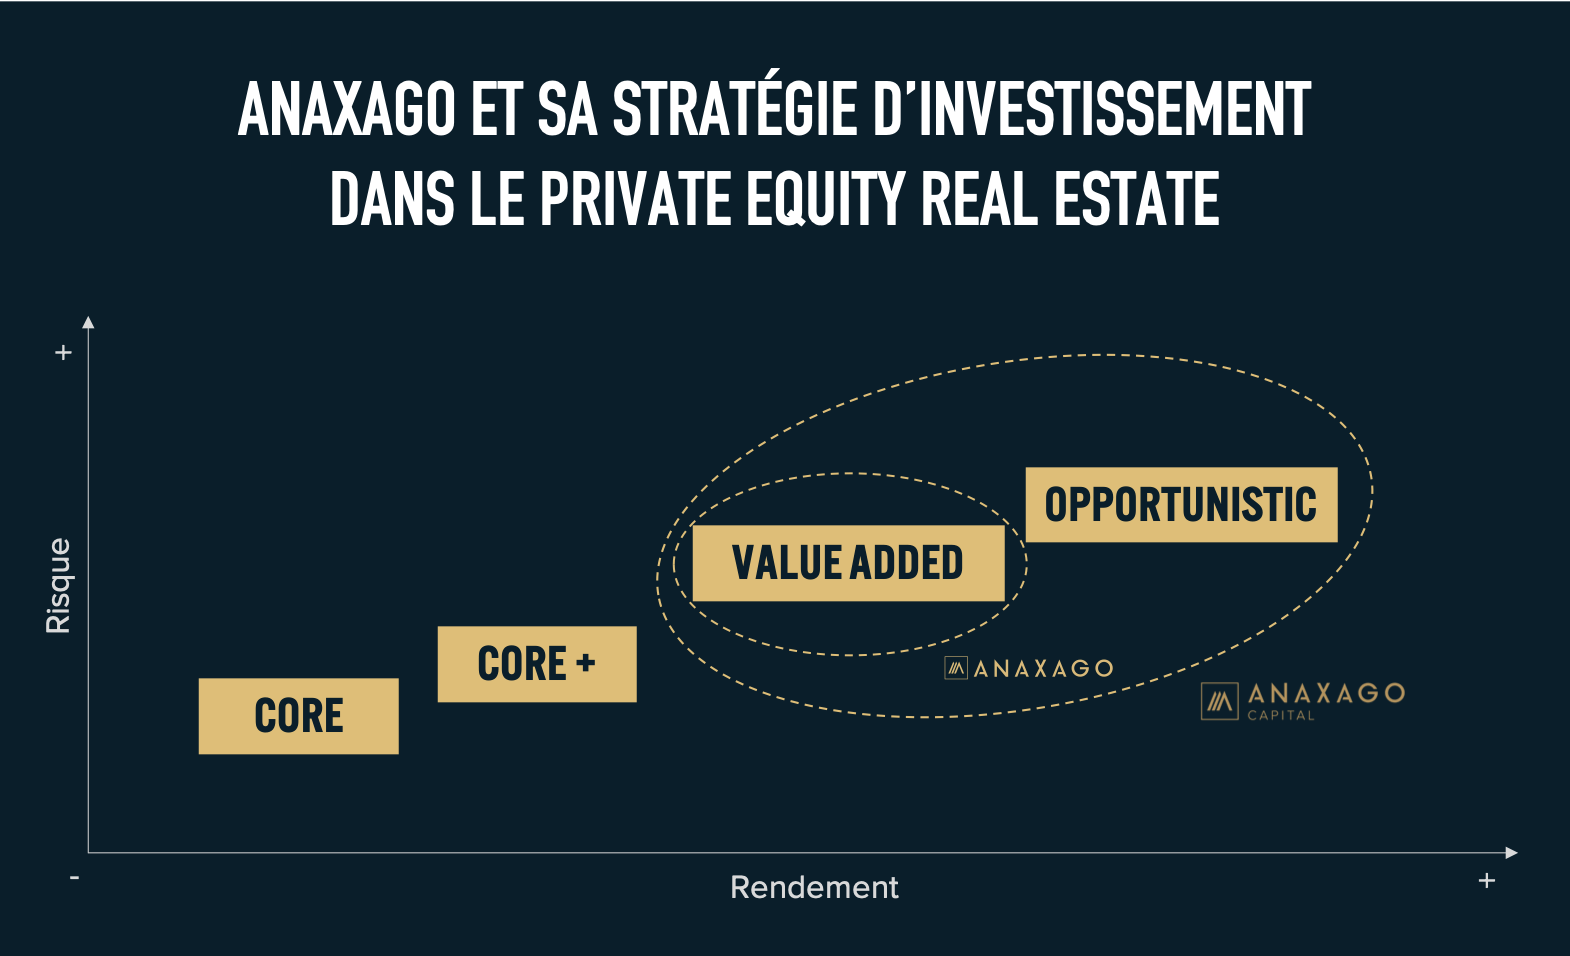 Stratégies d'investissement dans le private equity real estate ANAXAGO CORE CORE+ VALUE ADDED OPPORTUNISTIC